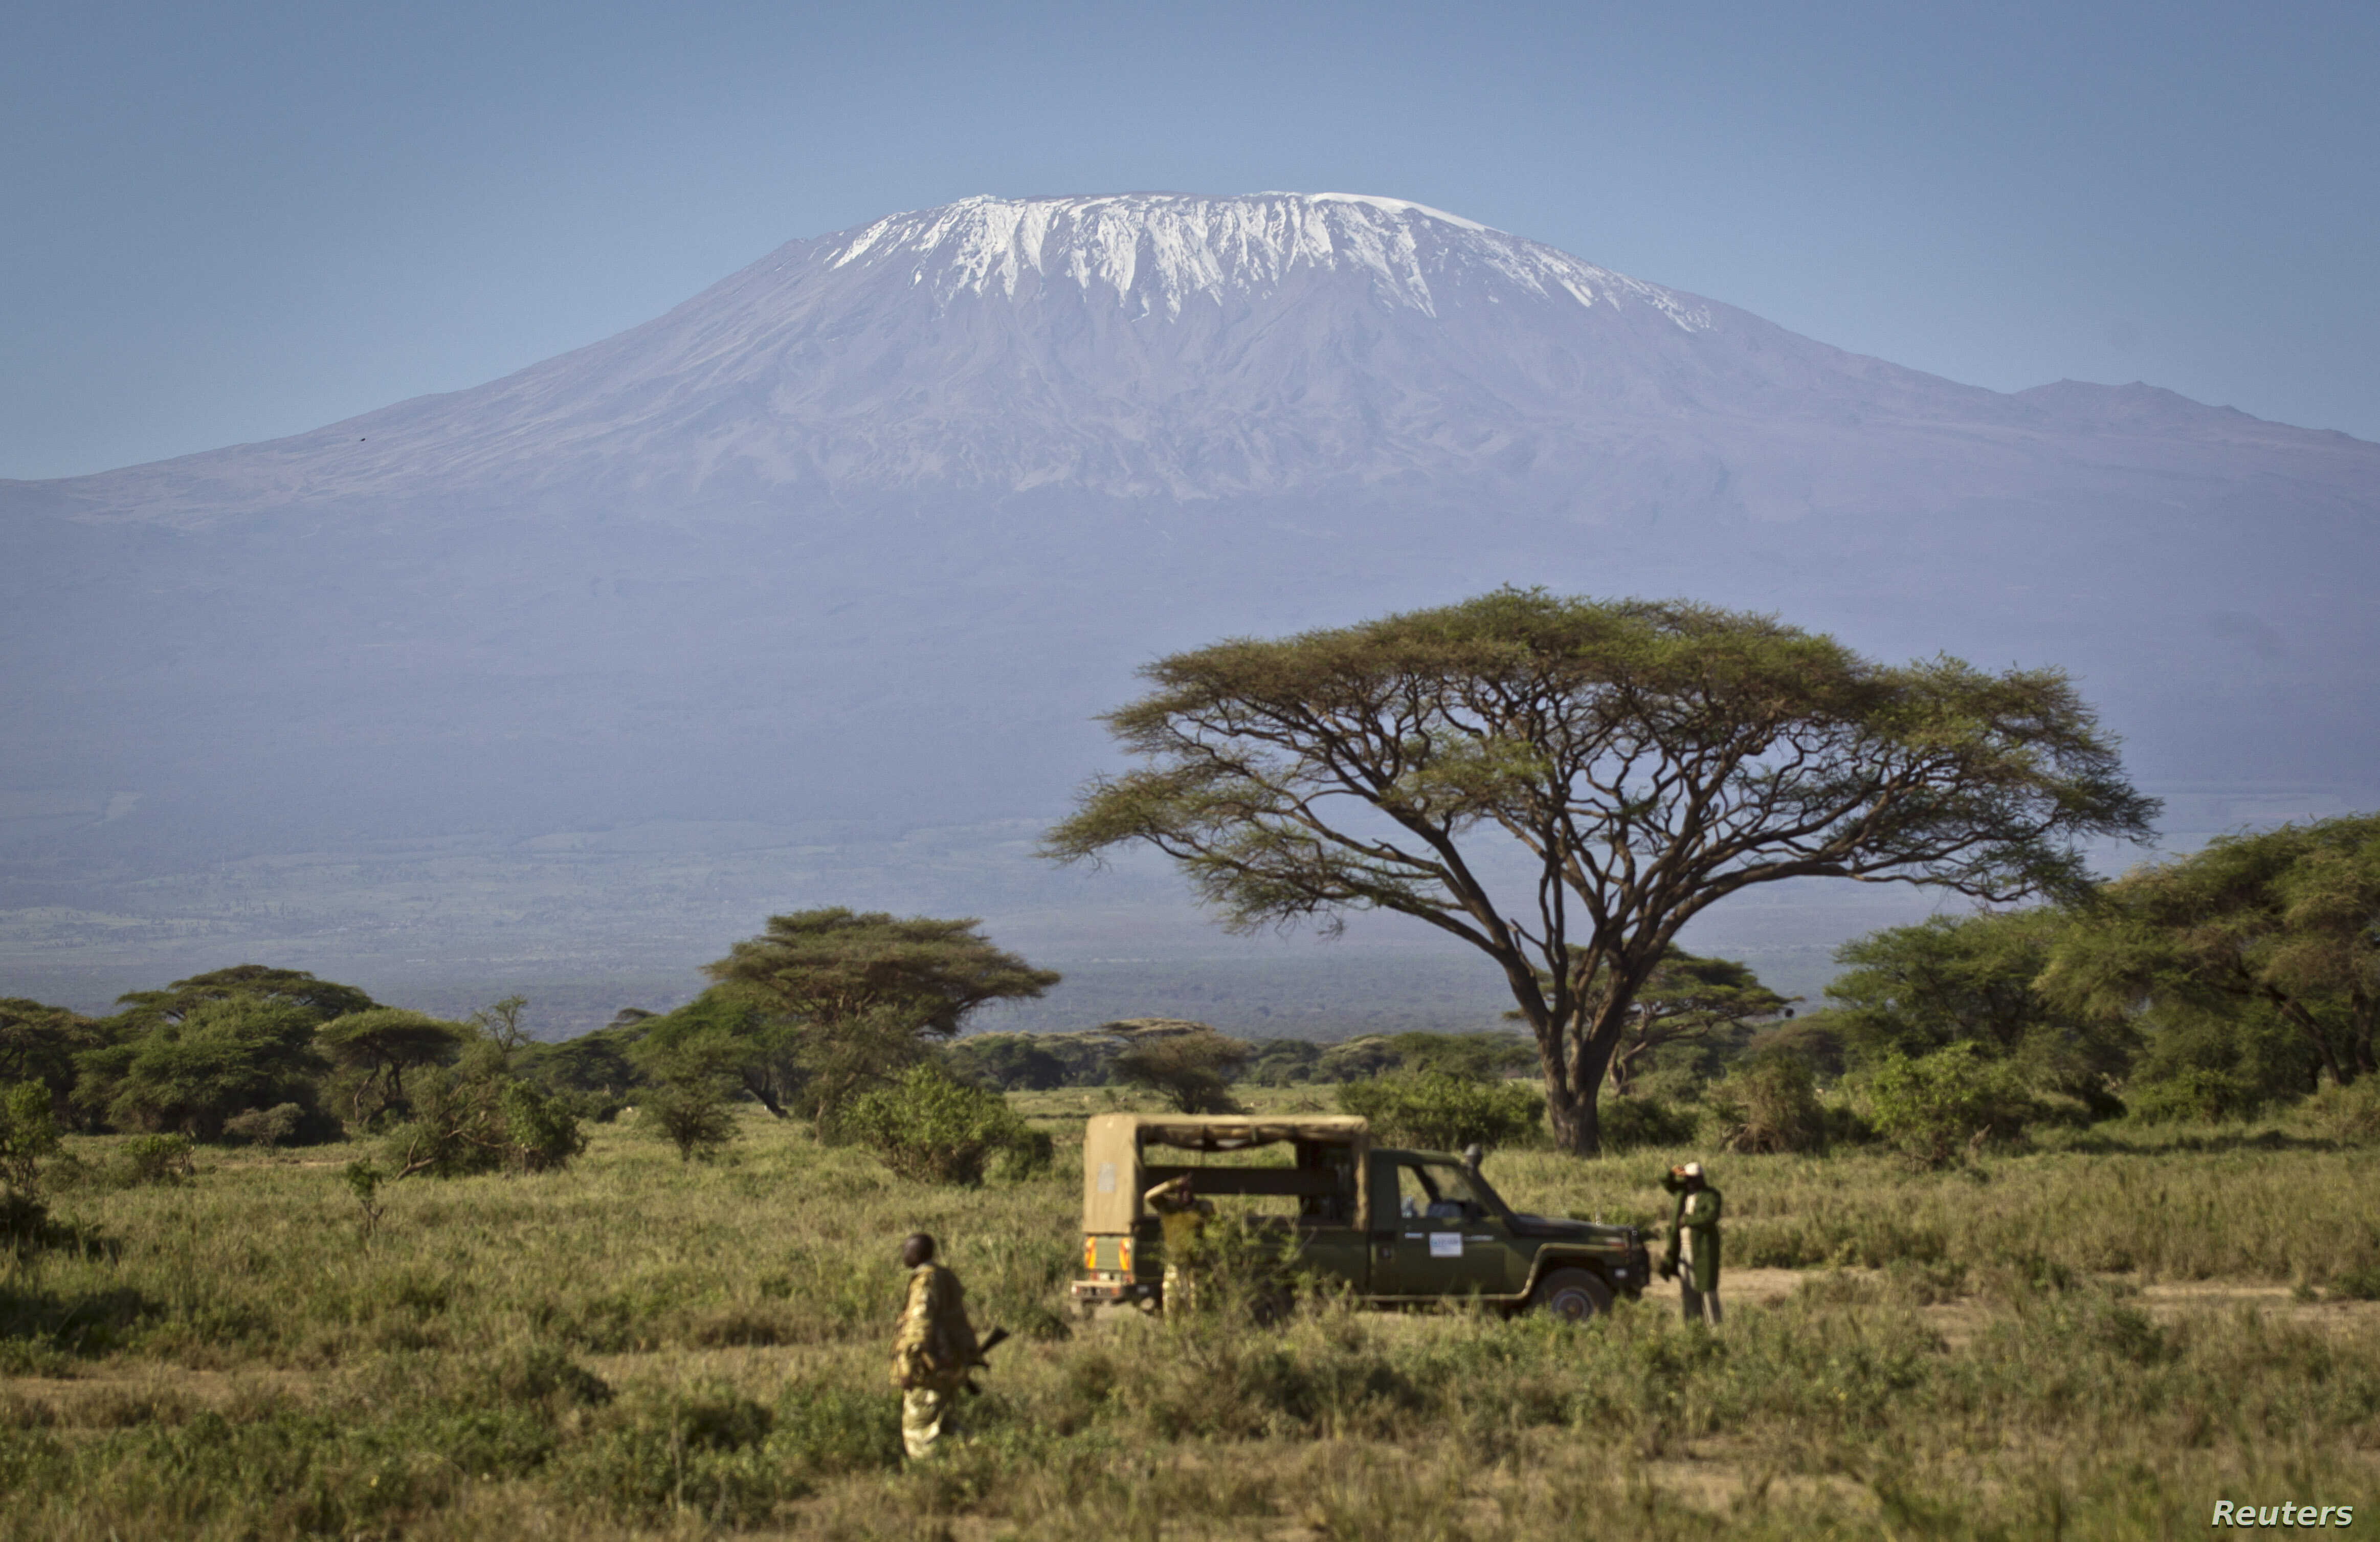 In this Tuesday, Feb. 19, 2013 photo, the highest mountain in Africa, Mount Kilimanjaro in Tanzania, looms in the background as a team from the Kenya Wildlife Service (KWS) and the International Fund for Animal Welfare (IFAW) prepares to fit elephant...